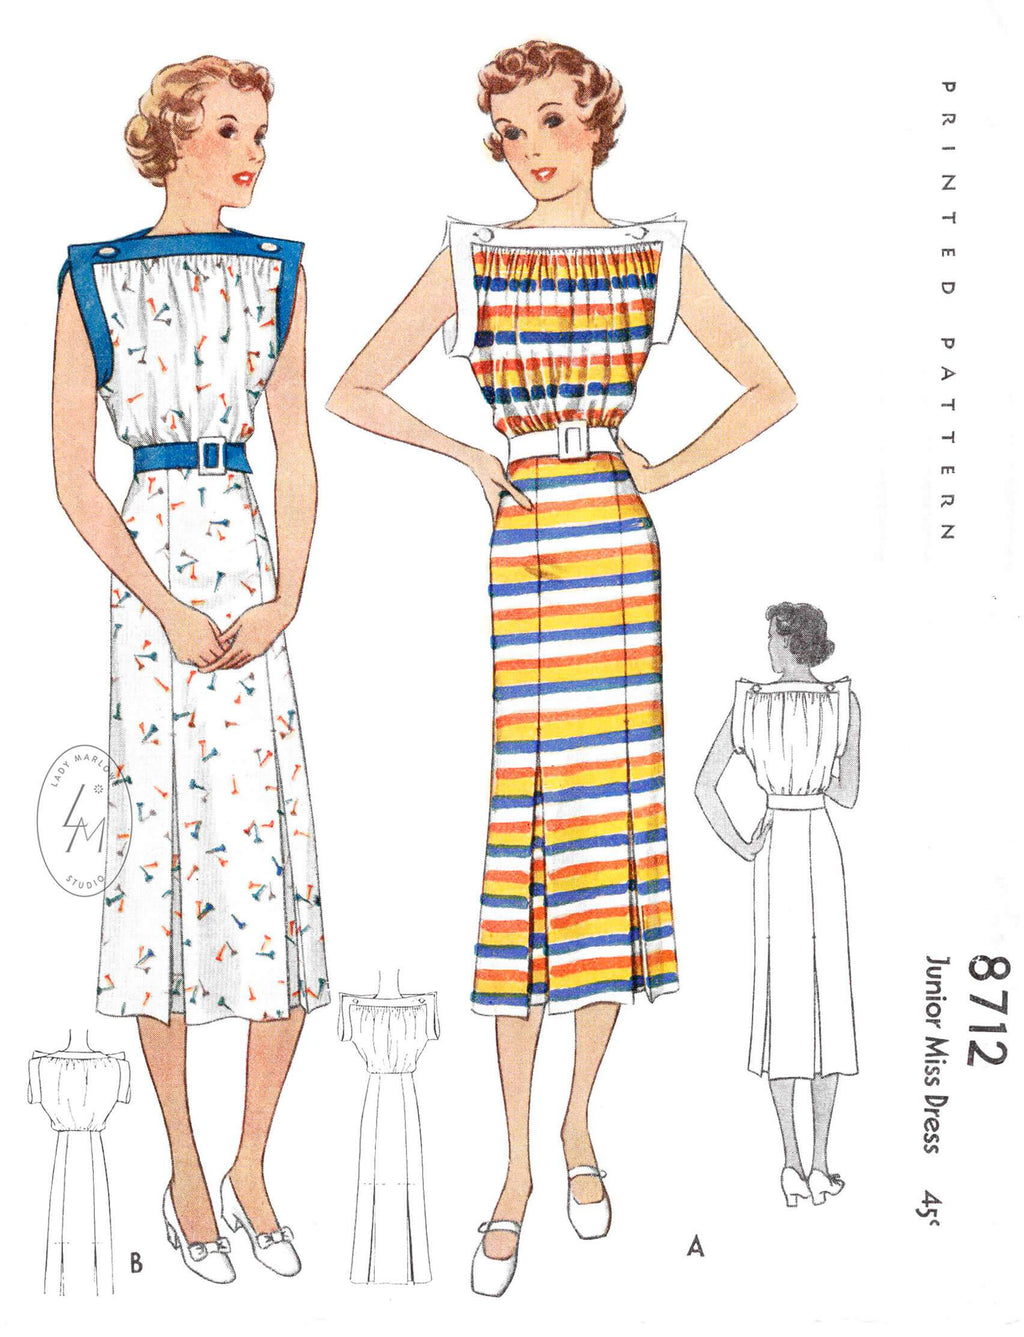 1930s 1936 misses' vintage summer dress sports dress McCall 8712 wide contrast band square bodice inverted pleat skirt sewing pattern reproduction